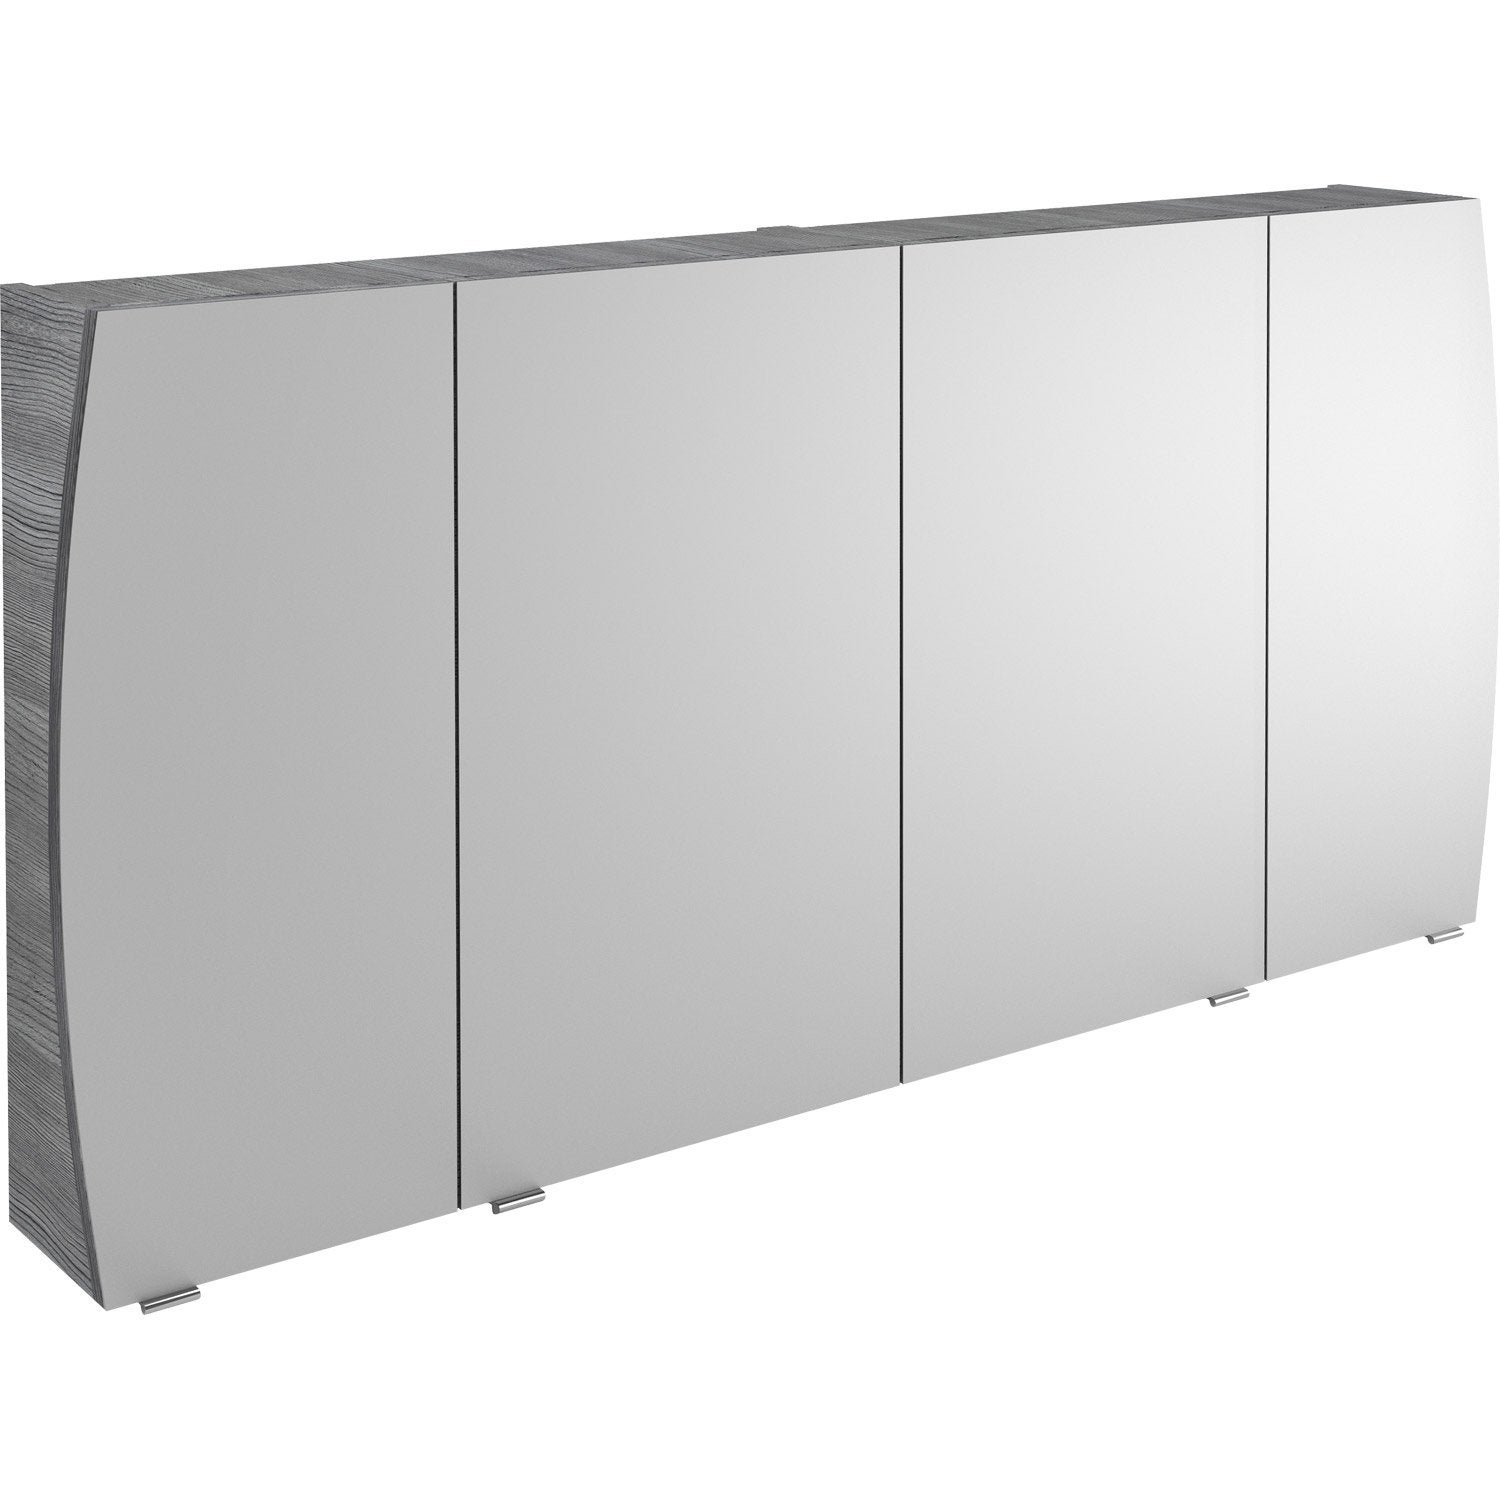 armoire de toilette l 140 cm gris structur image. Black Bedroom Furniture Sets. Home Design Ideas